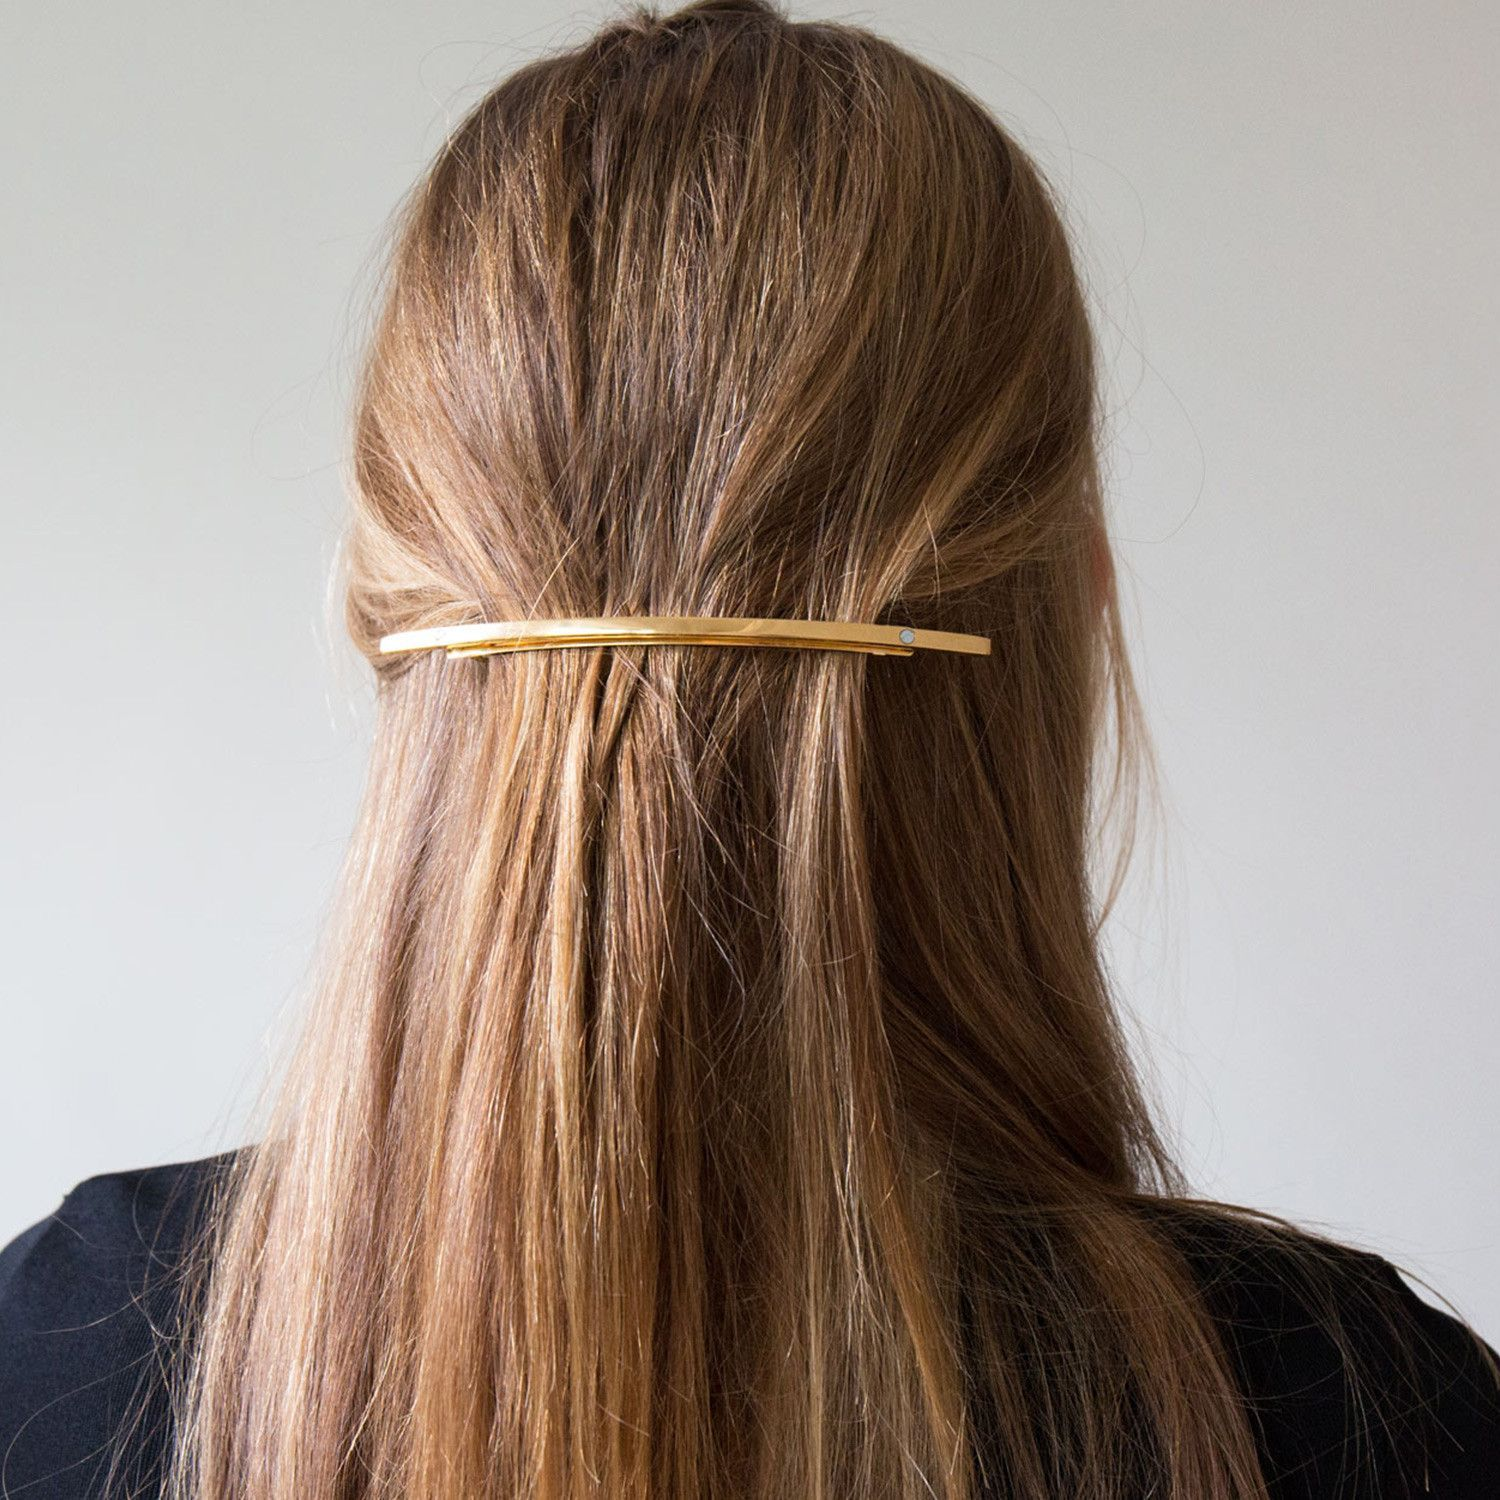 Barrette Hairstyles Sylvain Le Hen Gold Hair Barrette  Gold Hair Hair Barrettes And